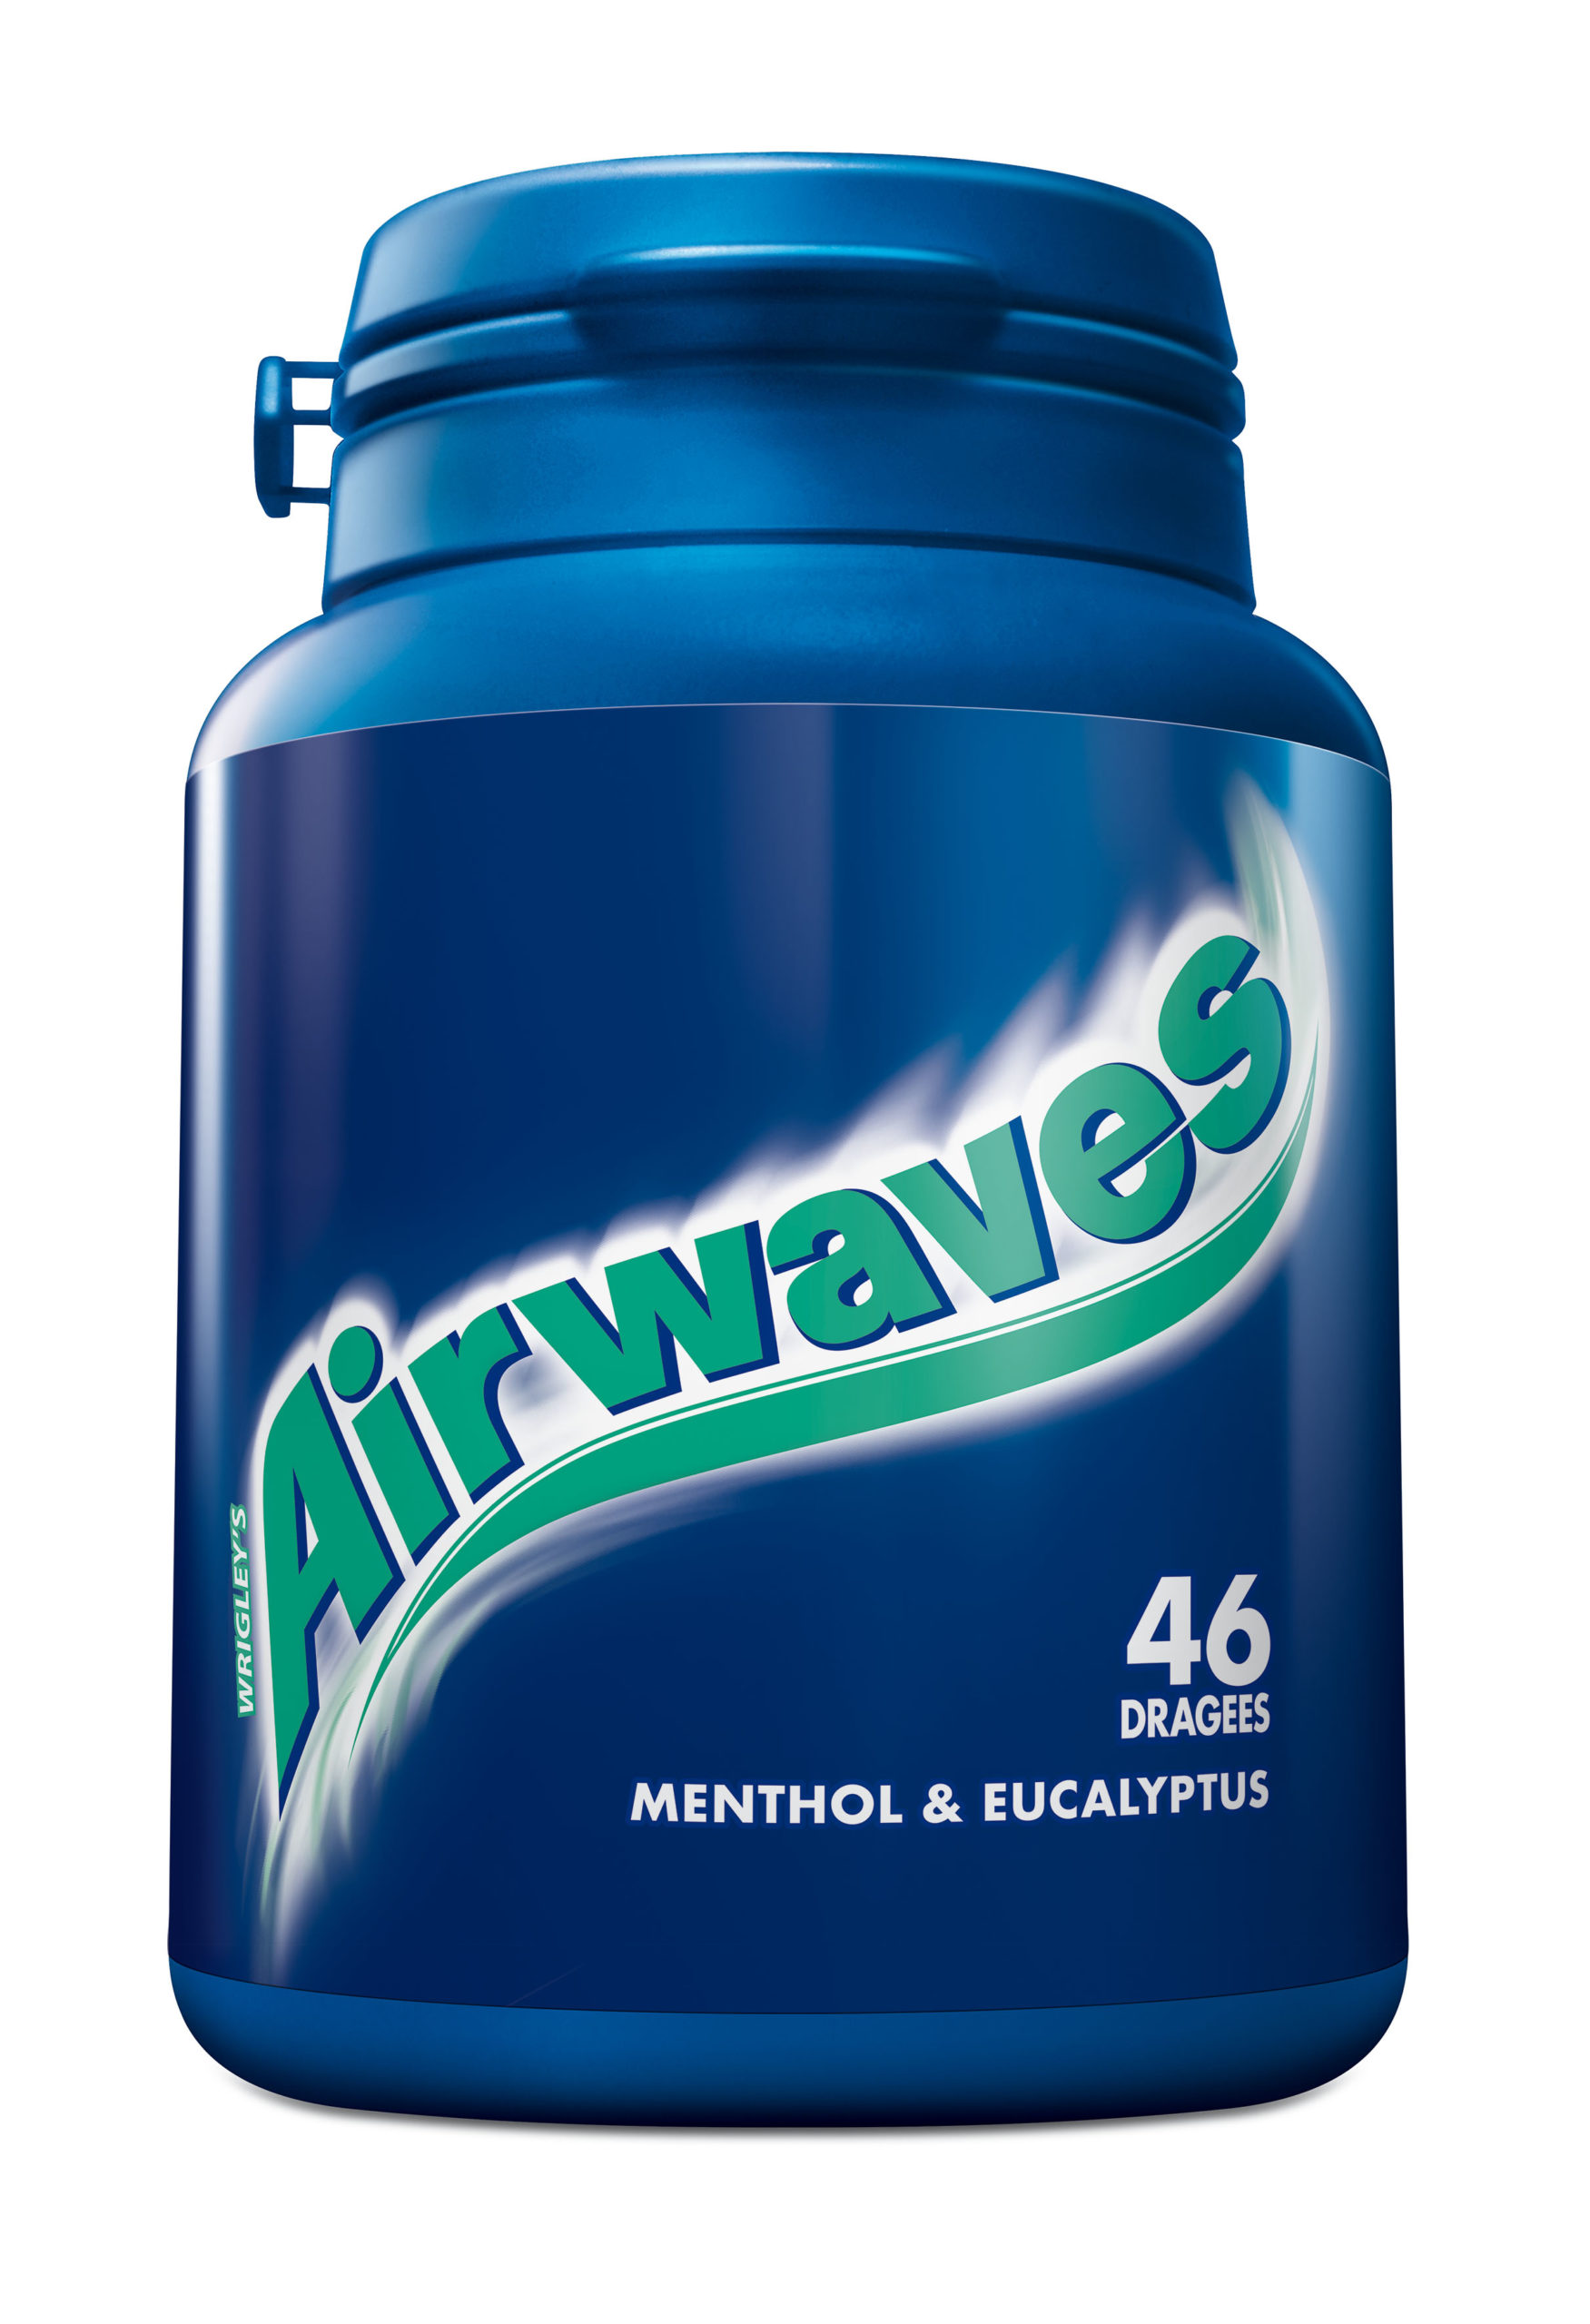 Airwaves bottle, menthol eucalyptus, boite de 6